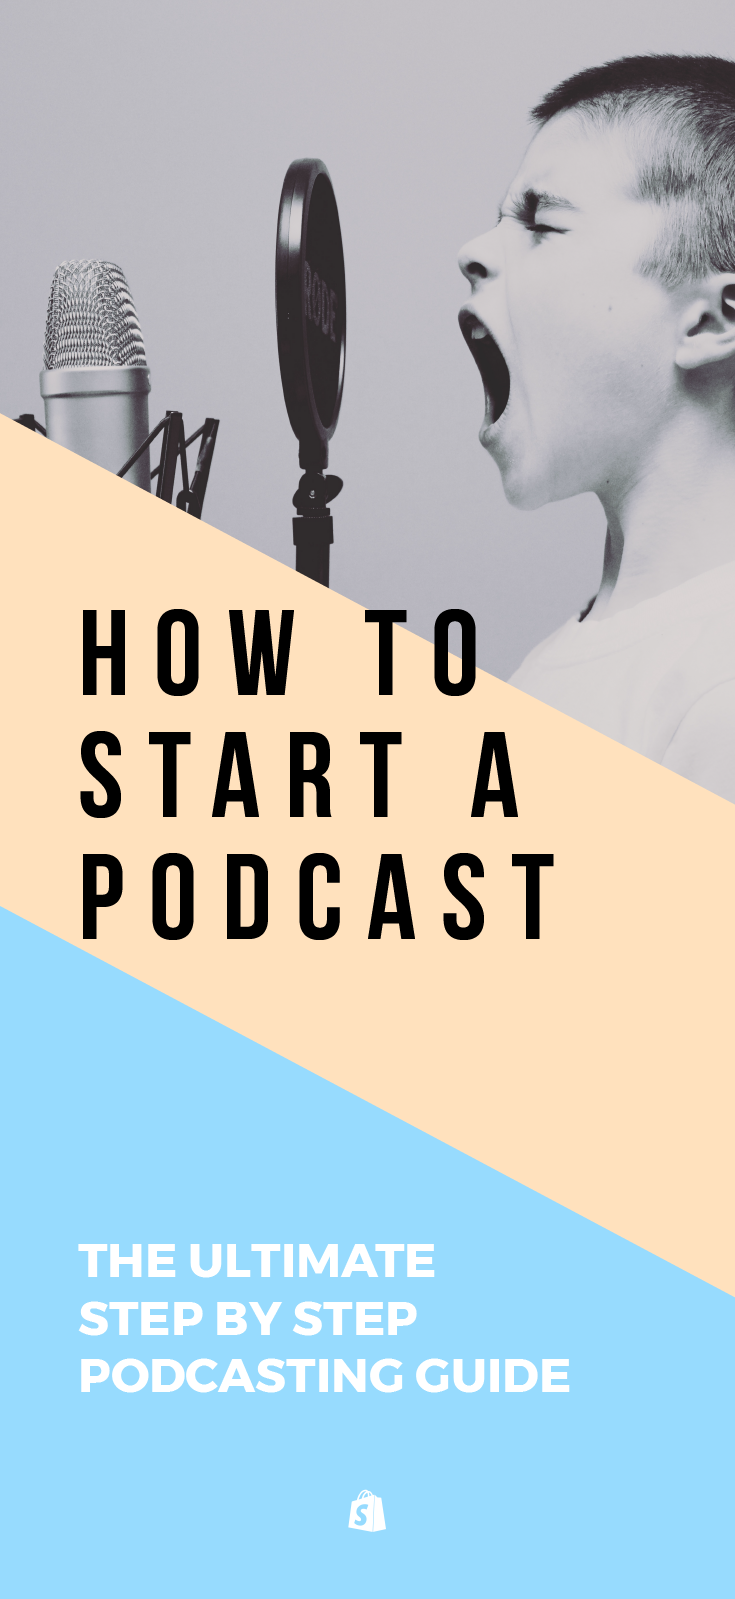 As Podcast Listenership Continues To Grow This New Aunce Could Help Your Business The Ultimate Guy Starting A